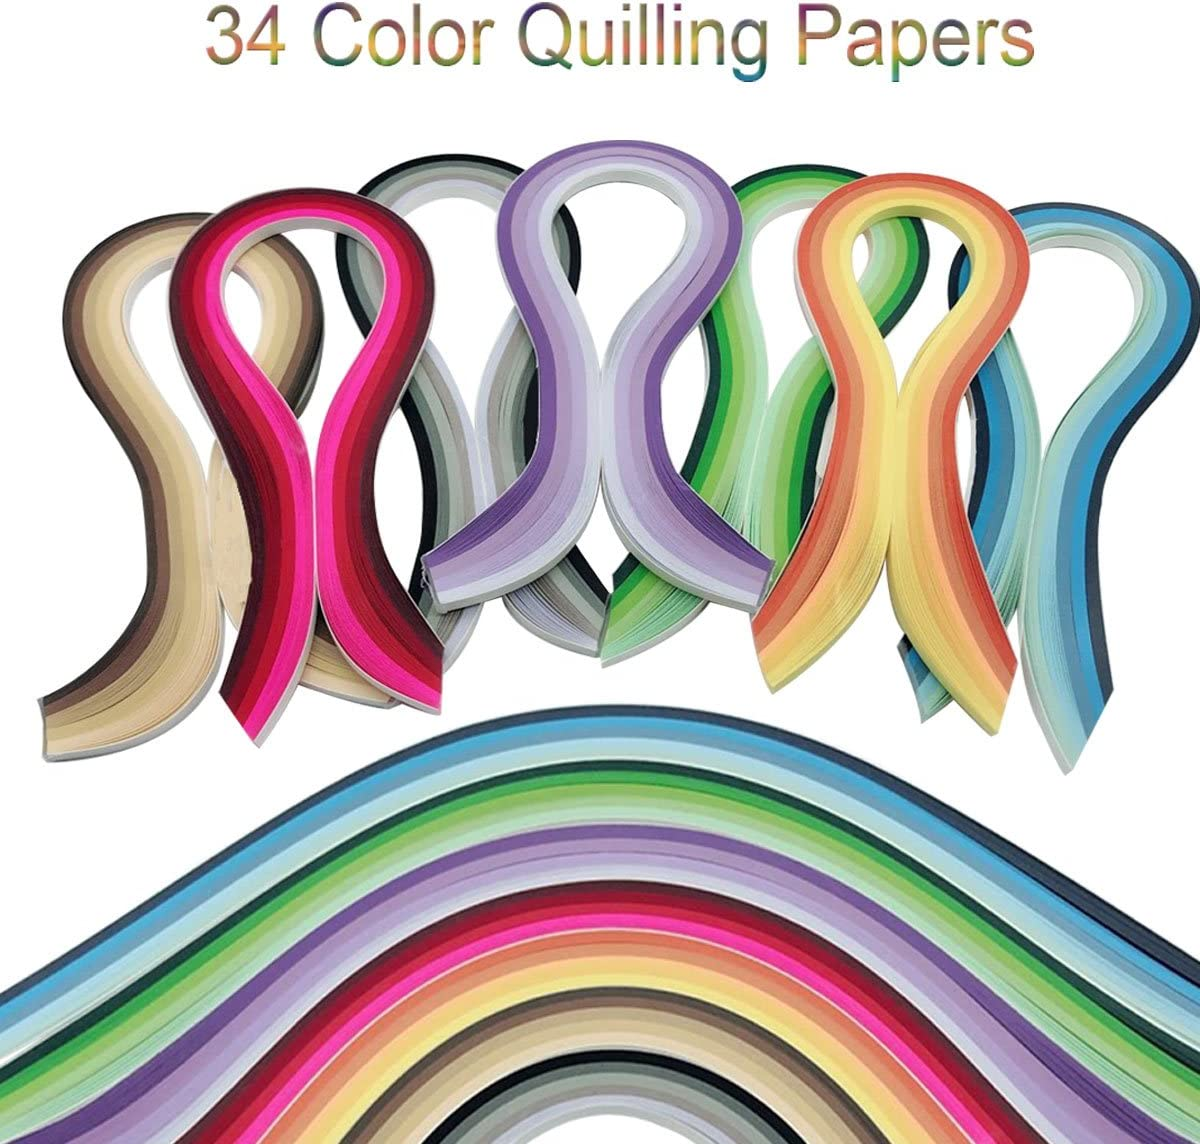 Woohome Quilling Supplies Paper Quilling Kits with 10 Quilling Tools and 34 Colors 700 Strips Quilling Paper for Craft